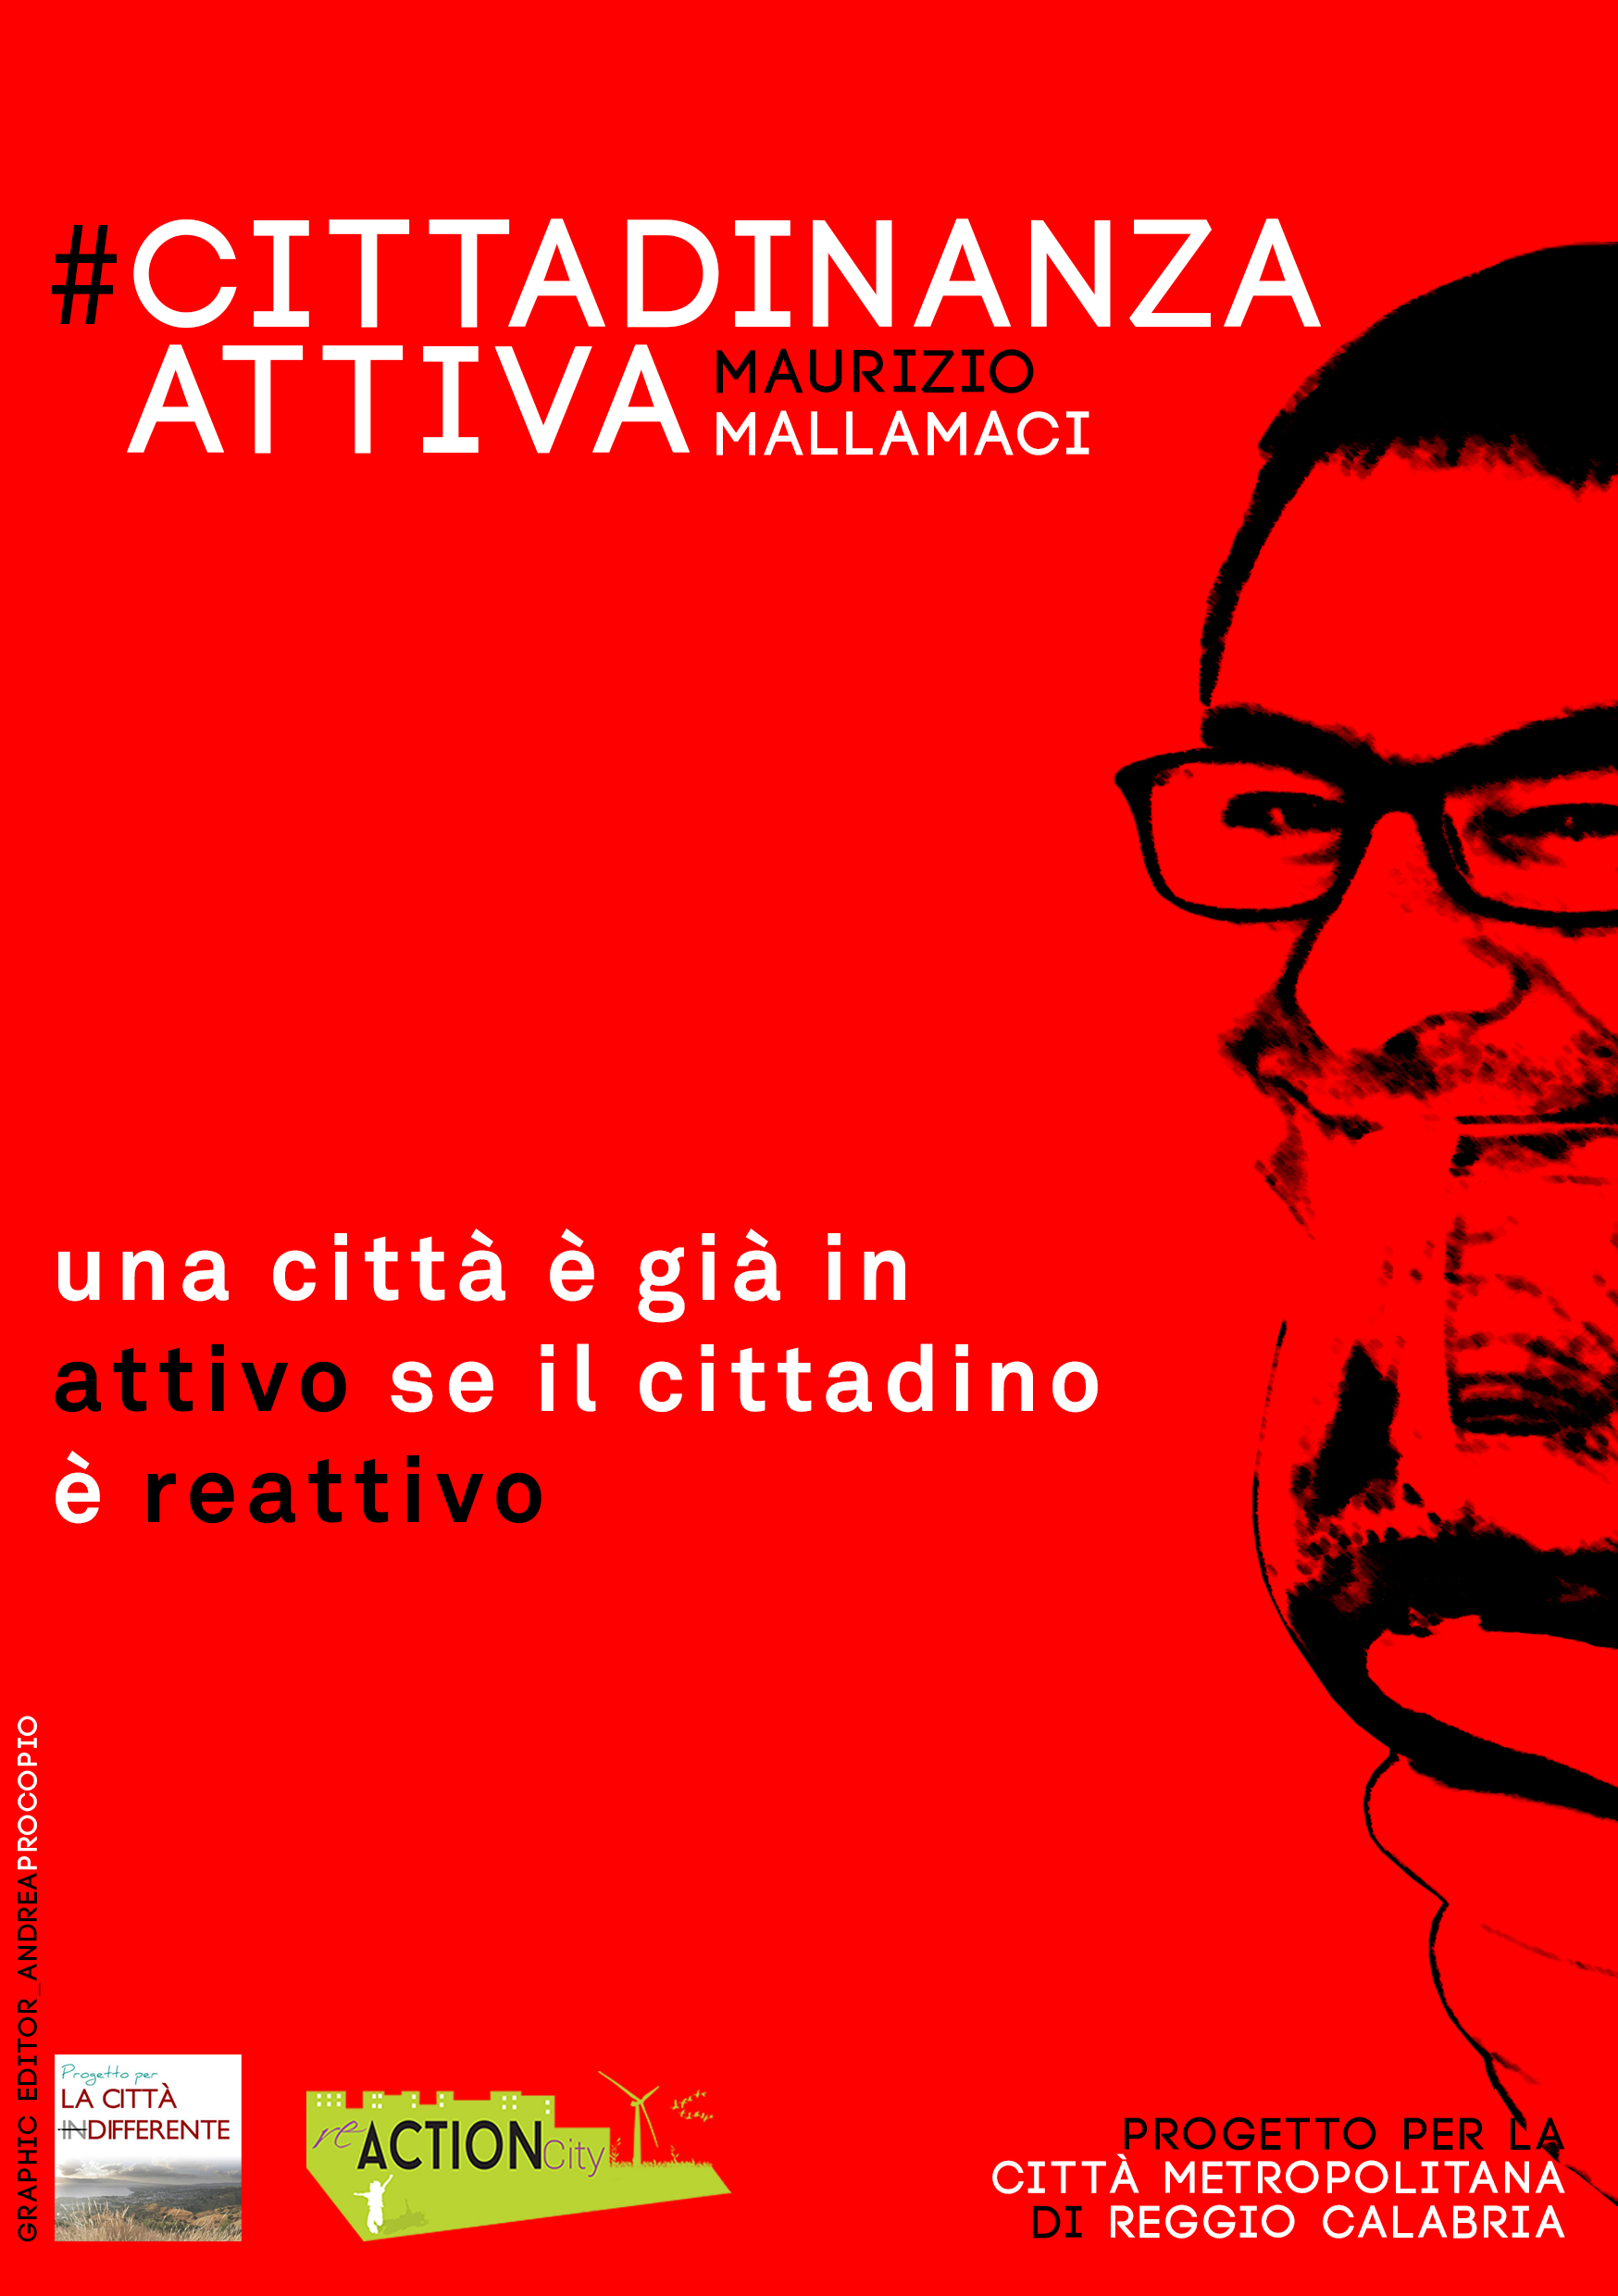 post-it_M.Mallamaci #cittadinanza attiva.jpg